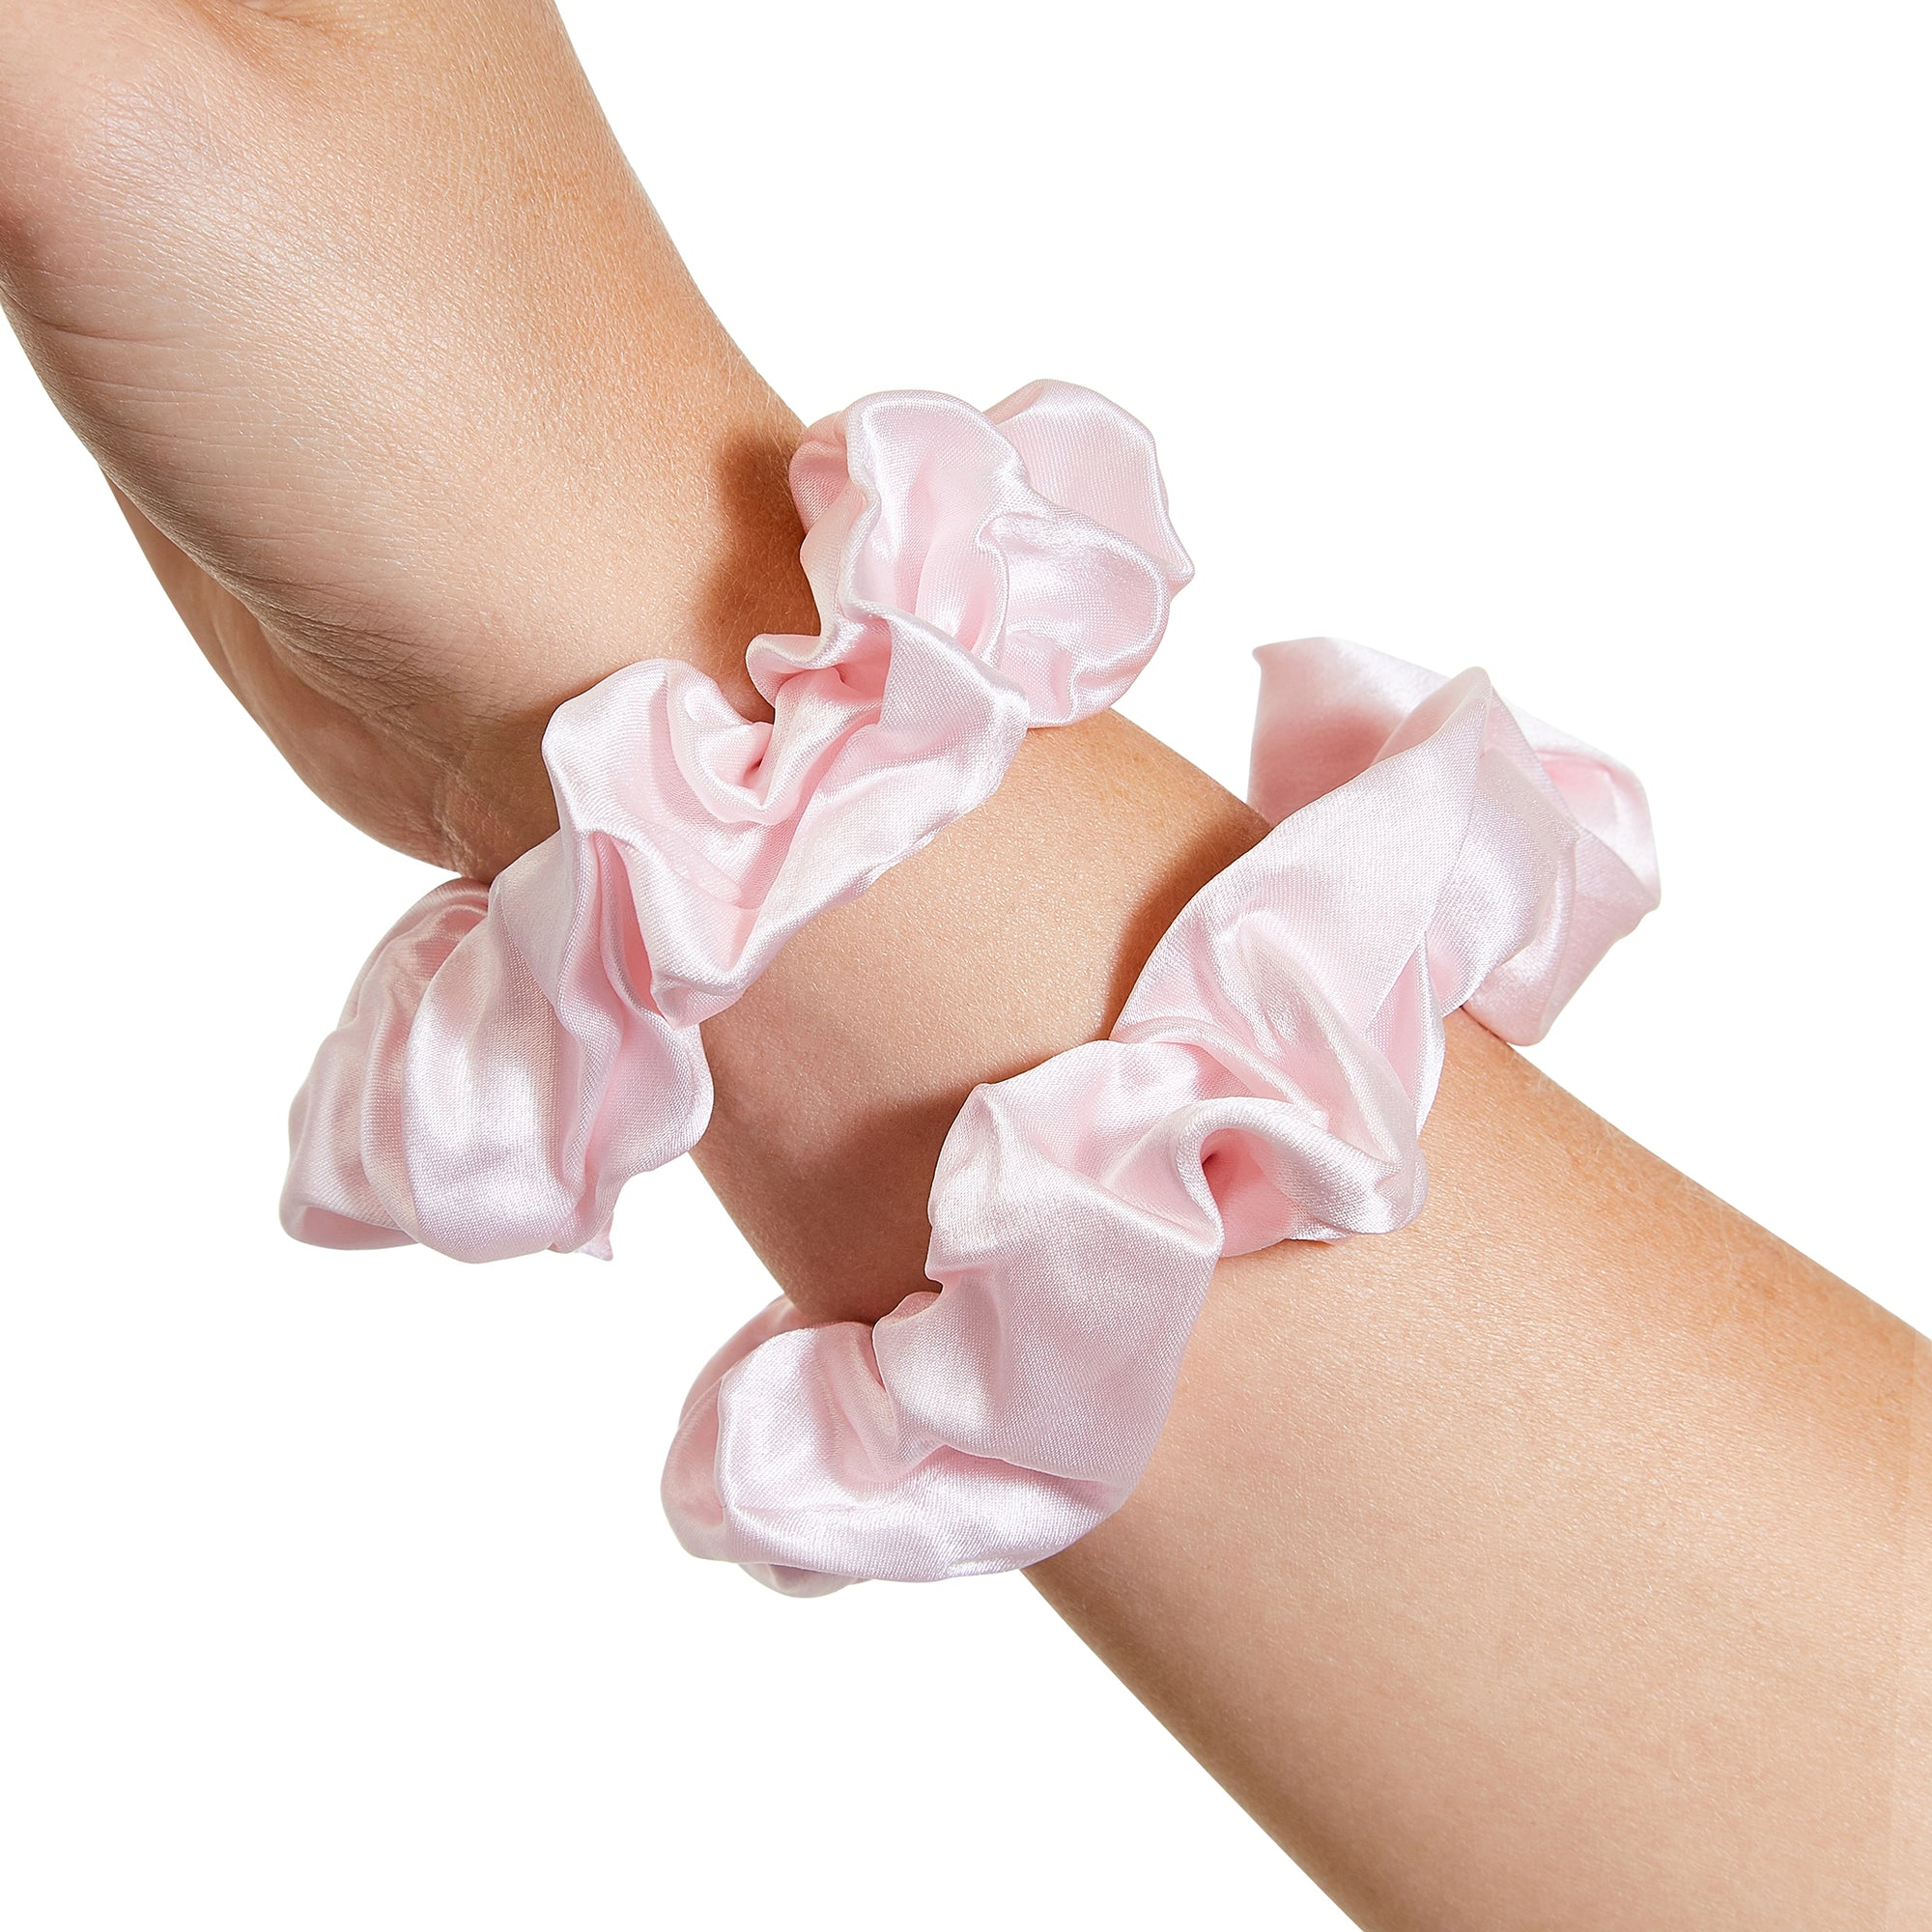 Only Curls Silk Scrunchies Pink - Only Curls